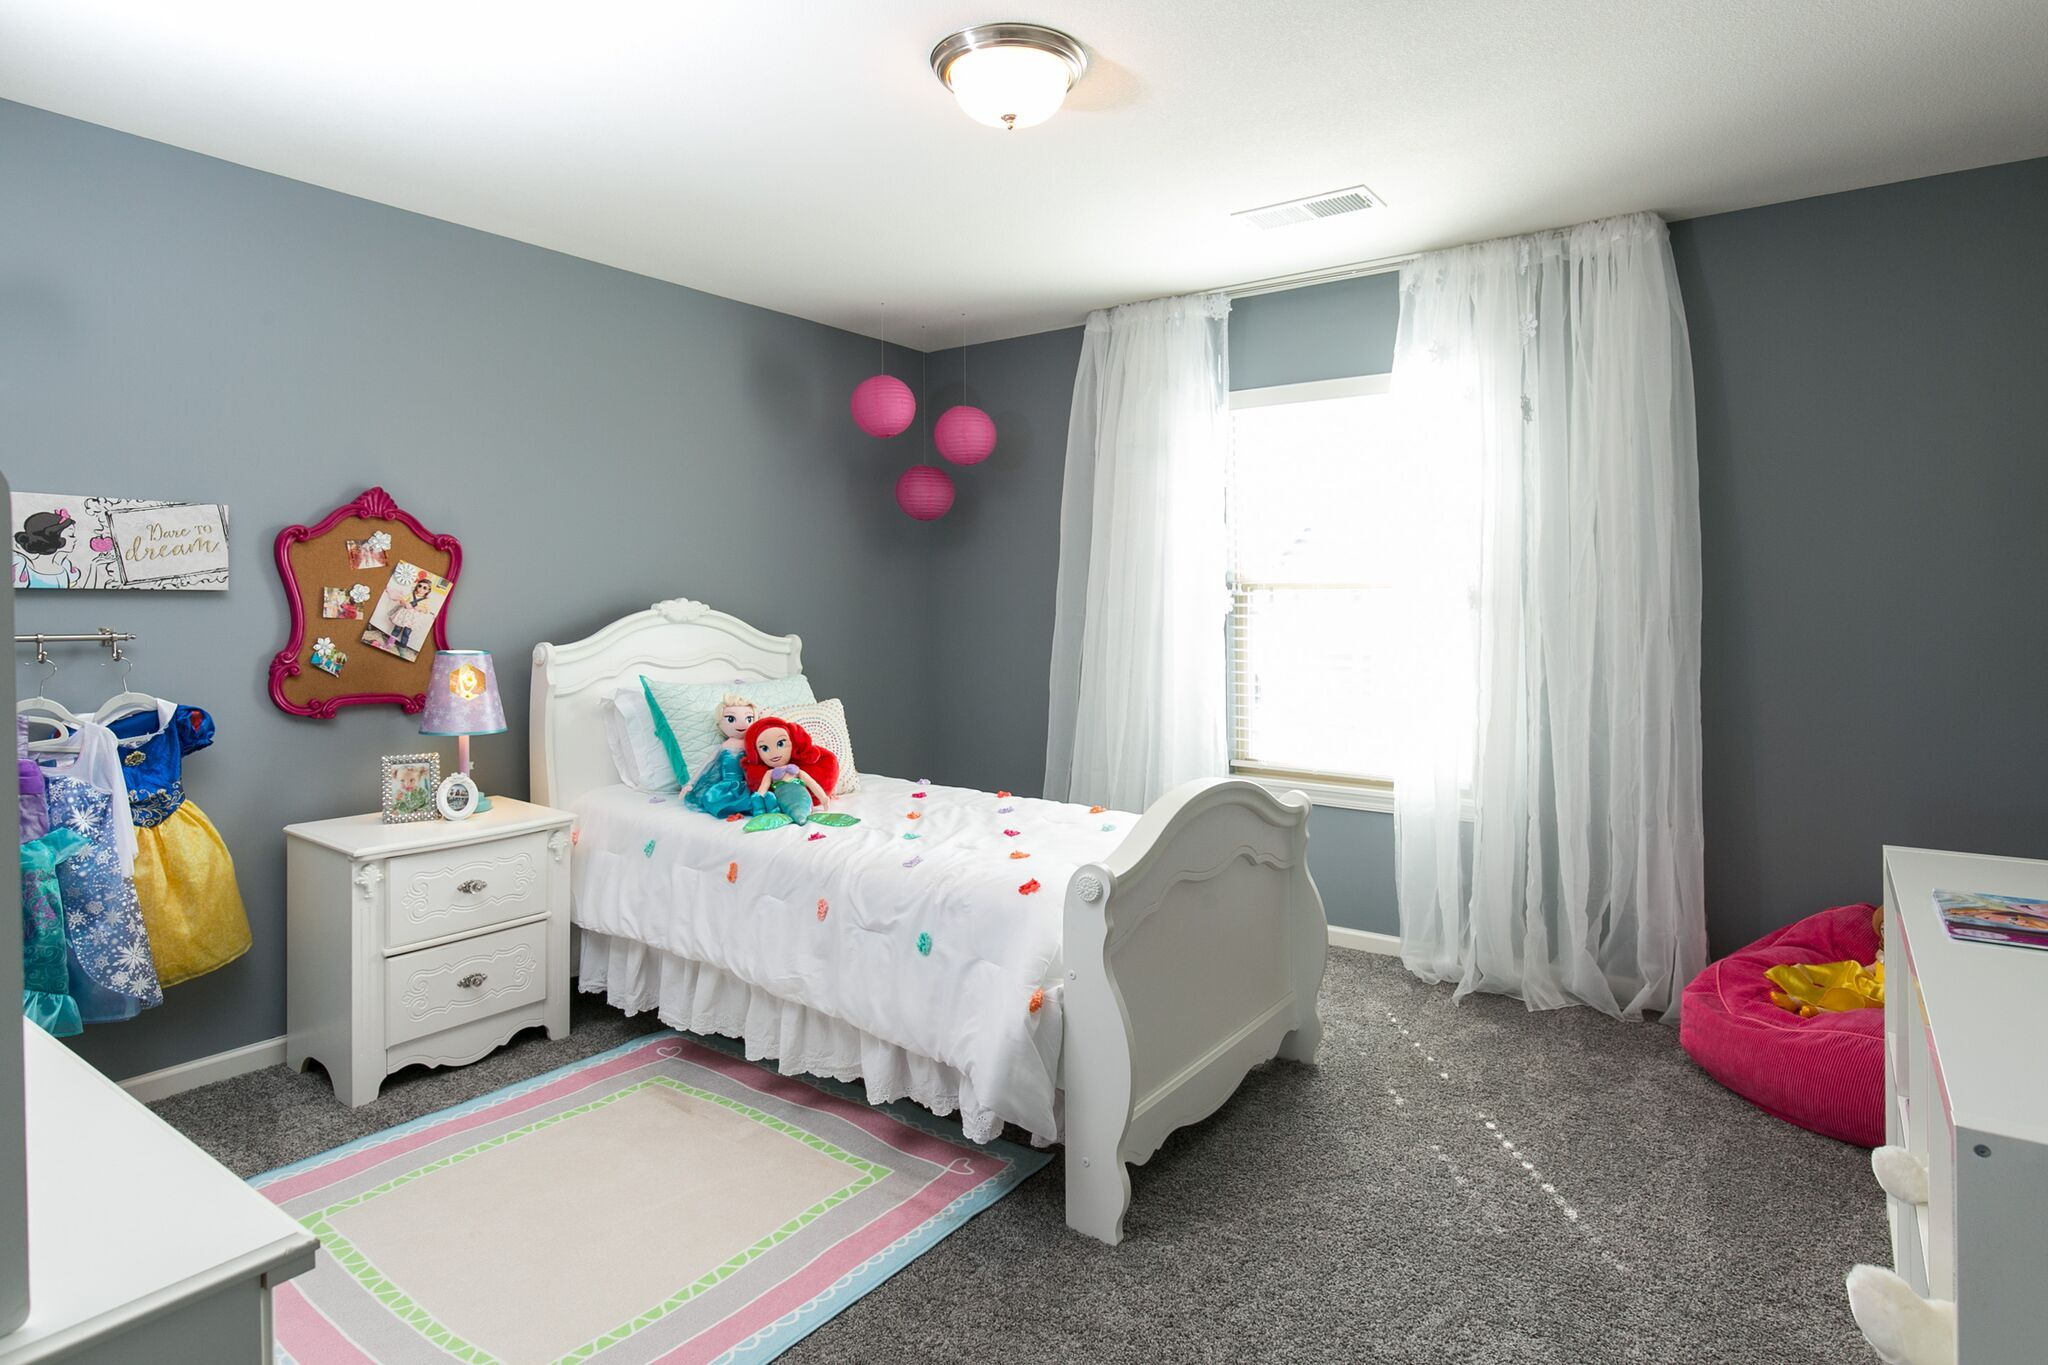 Bedroom featured in the Bayfield - IA By Summit Homes in Des Moines, IA